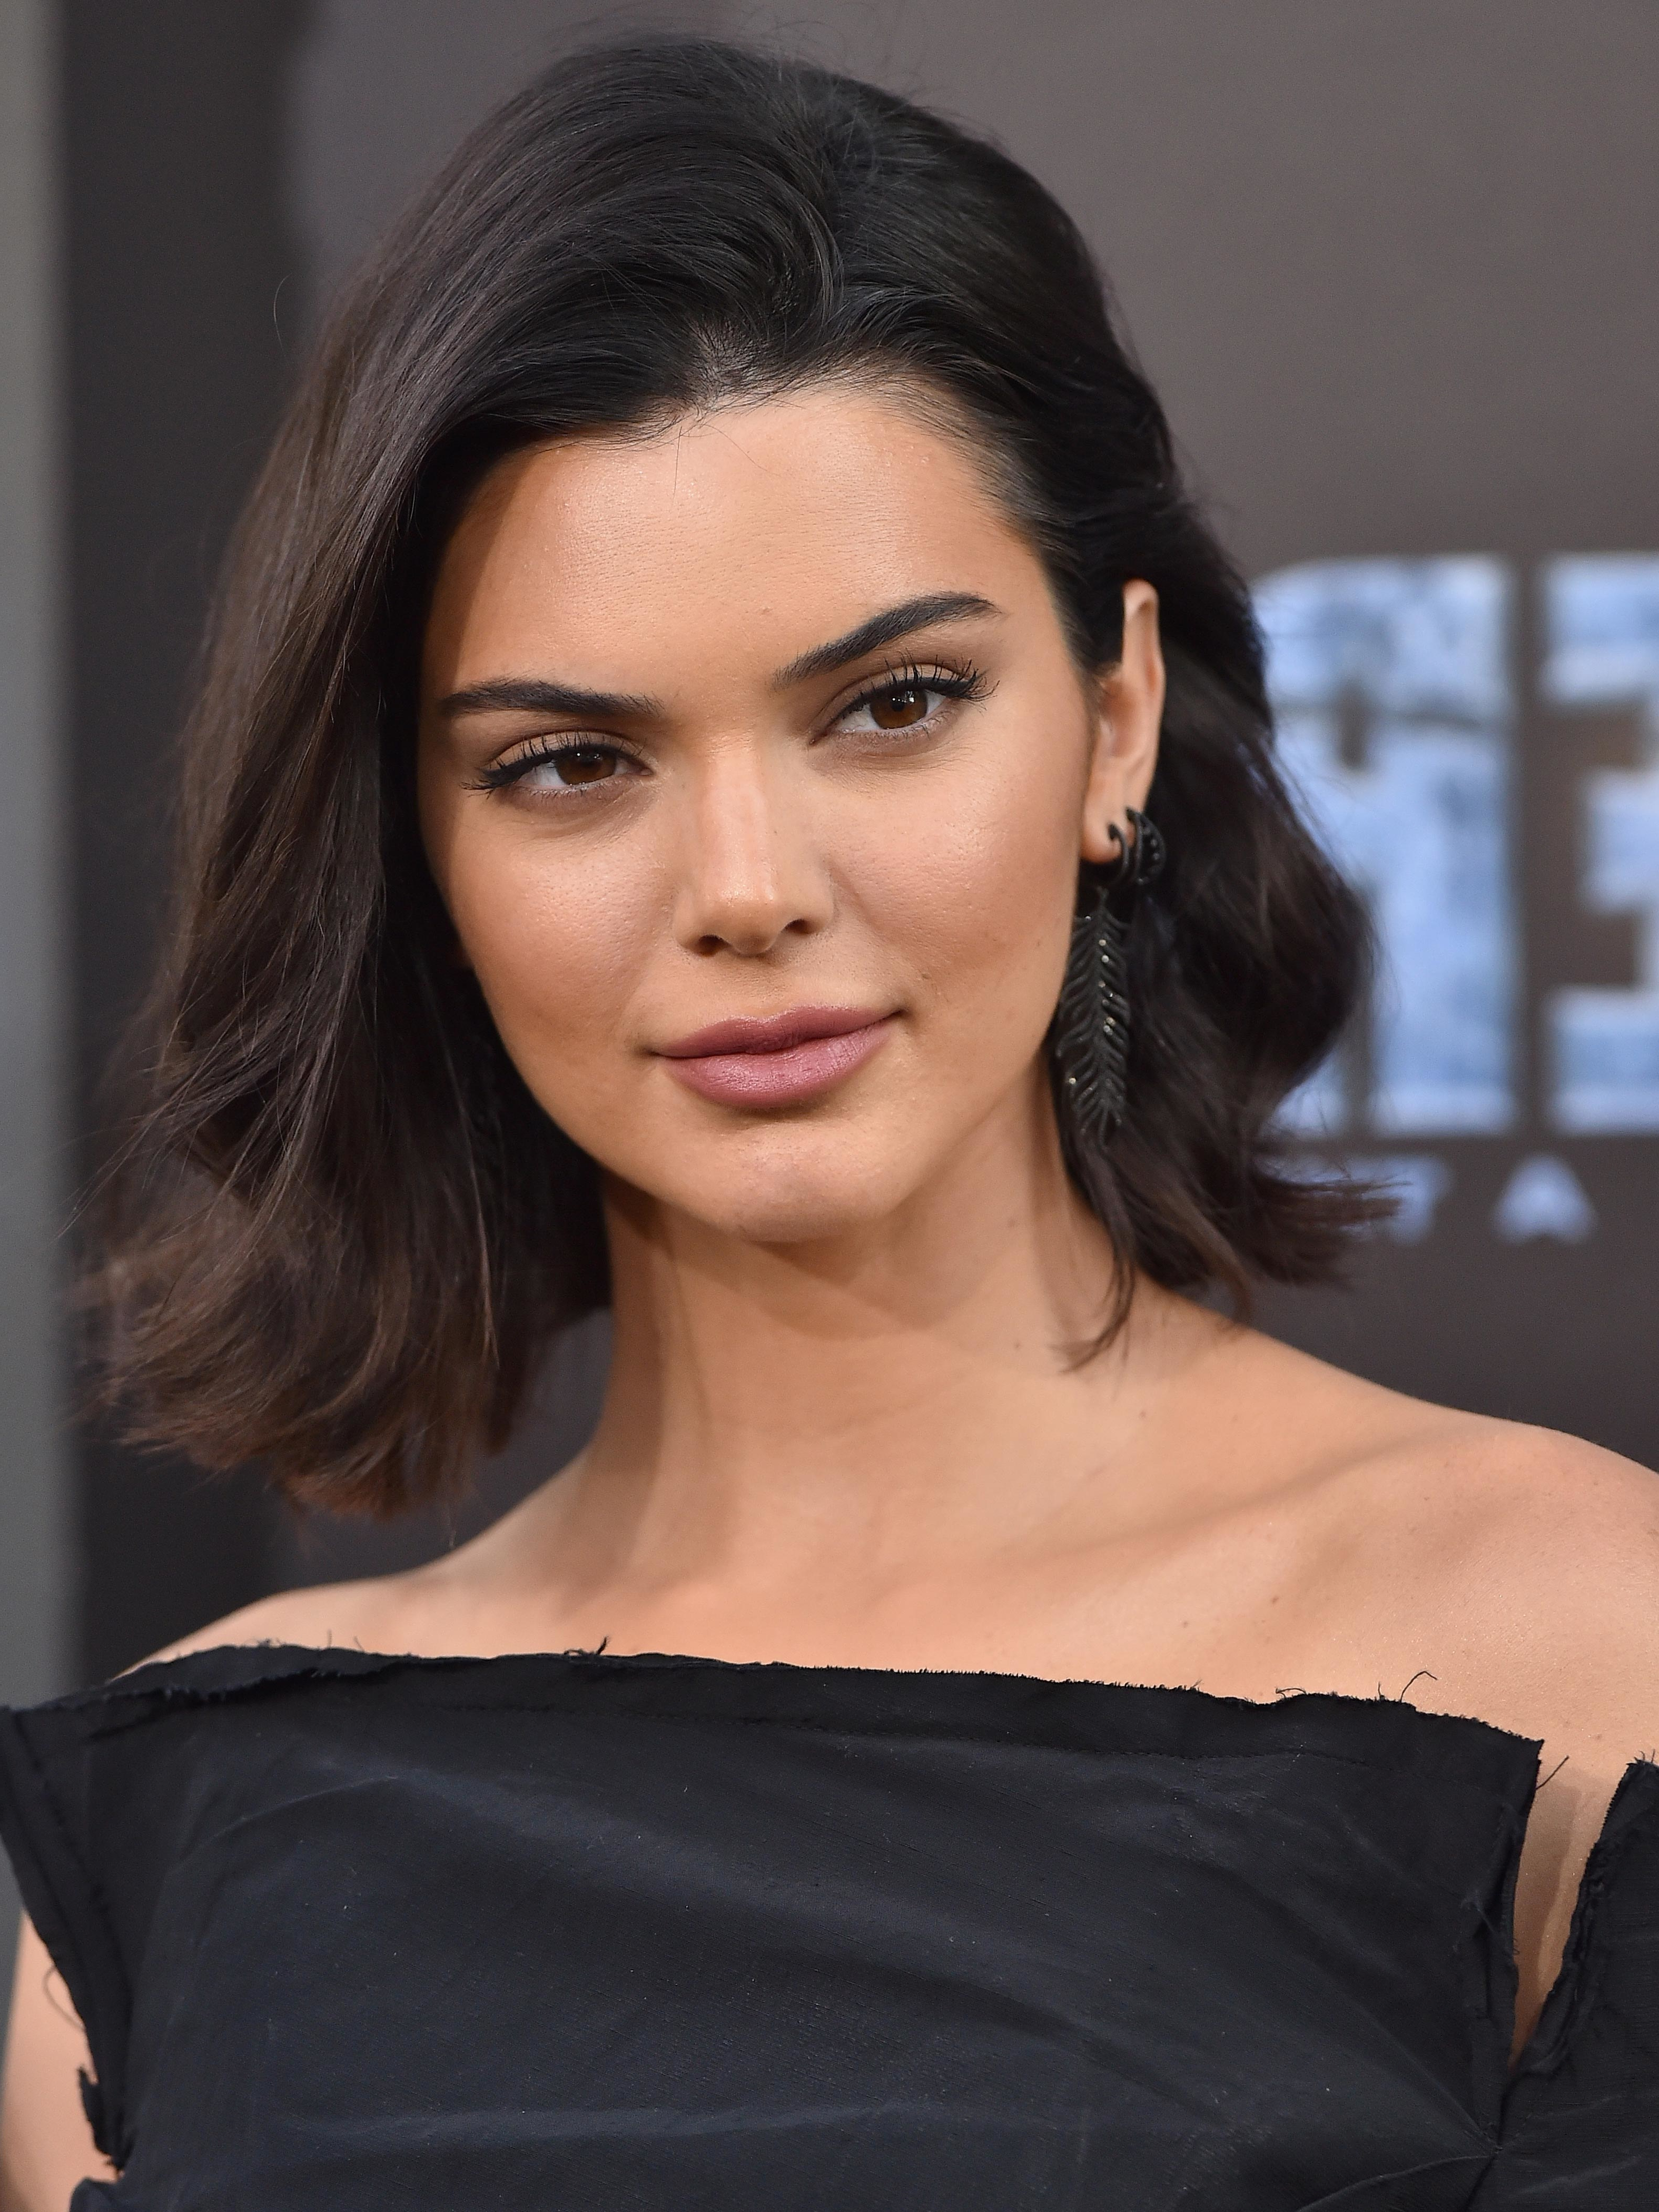 Kendall Jenner Debuts Pixie Resembling Kris Jenner's At Nyfw – Allure Inside Kris Jenner Short Hairstyles (View 19 of 25)